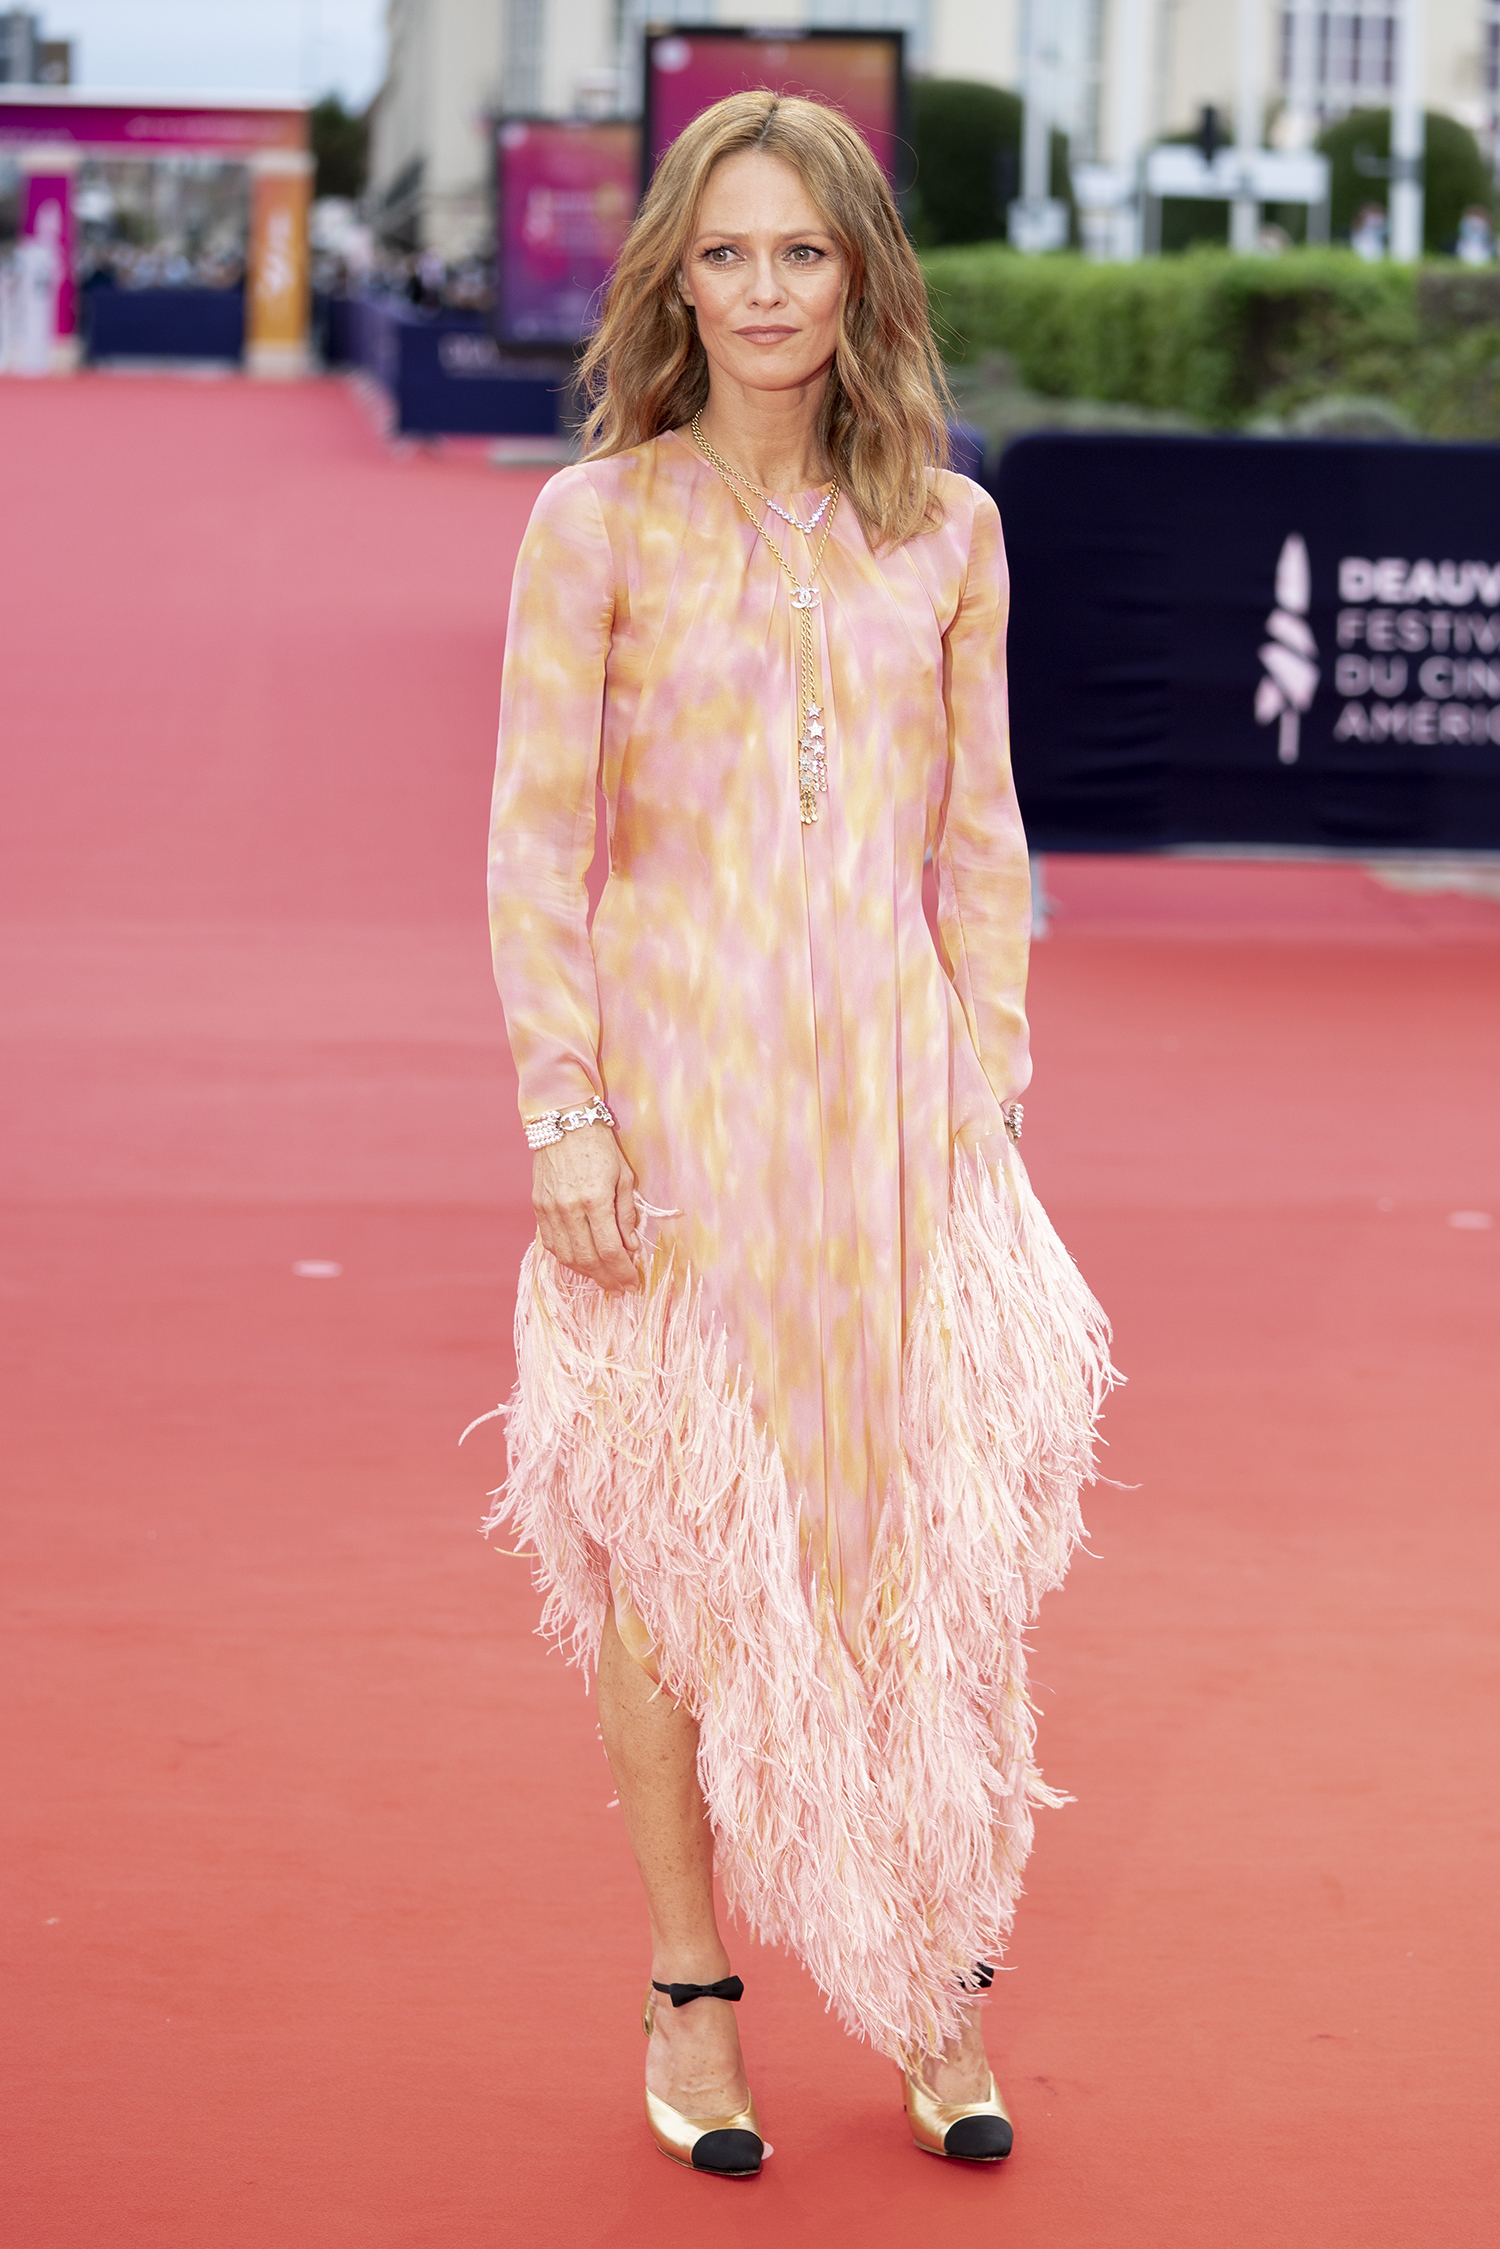 46th Deauville American Film Festival : Opening Ceremony